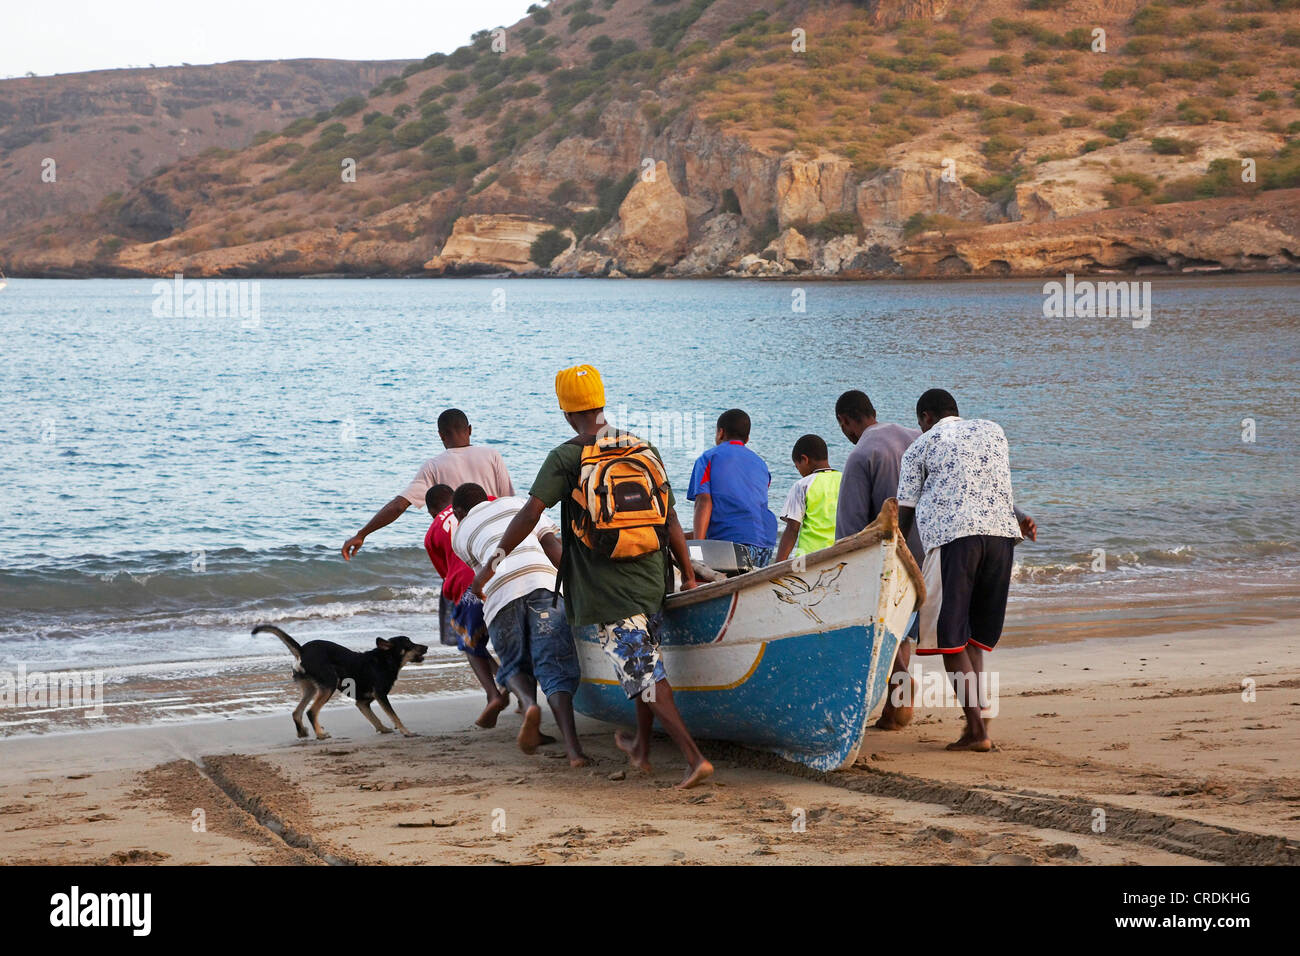 fishermen are going out in the morning, Cap Verde Islands, Cabo Verde, Tarrafal - Stock Image